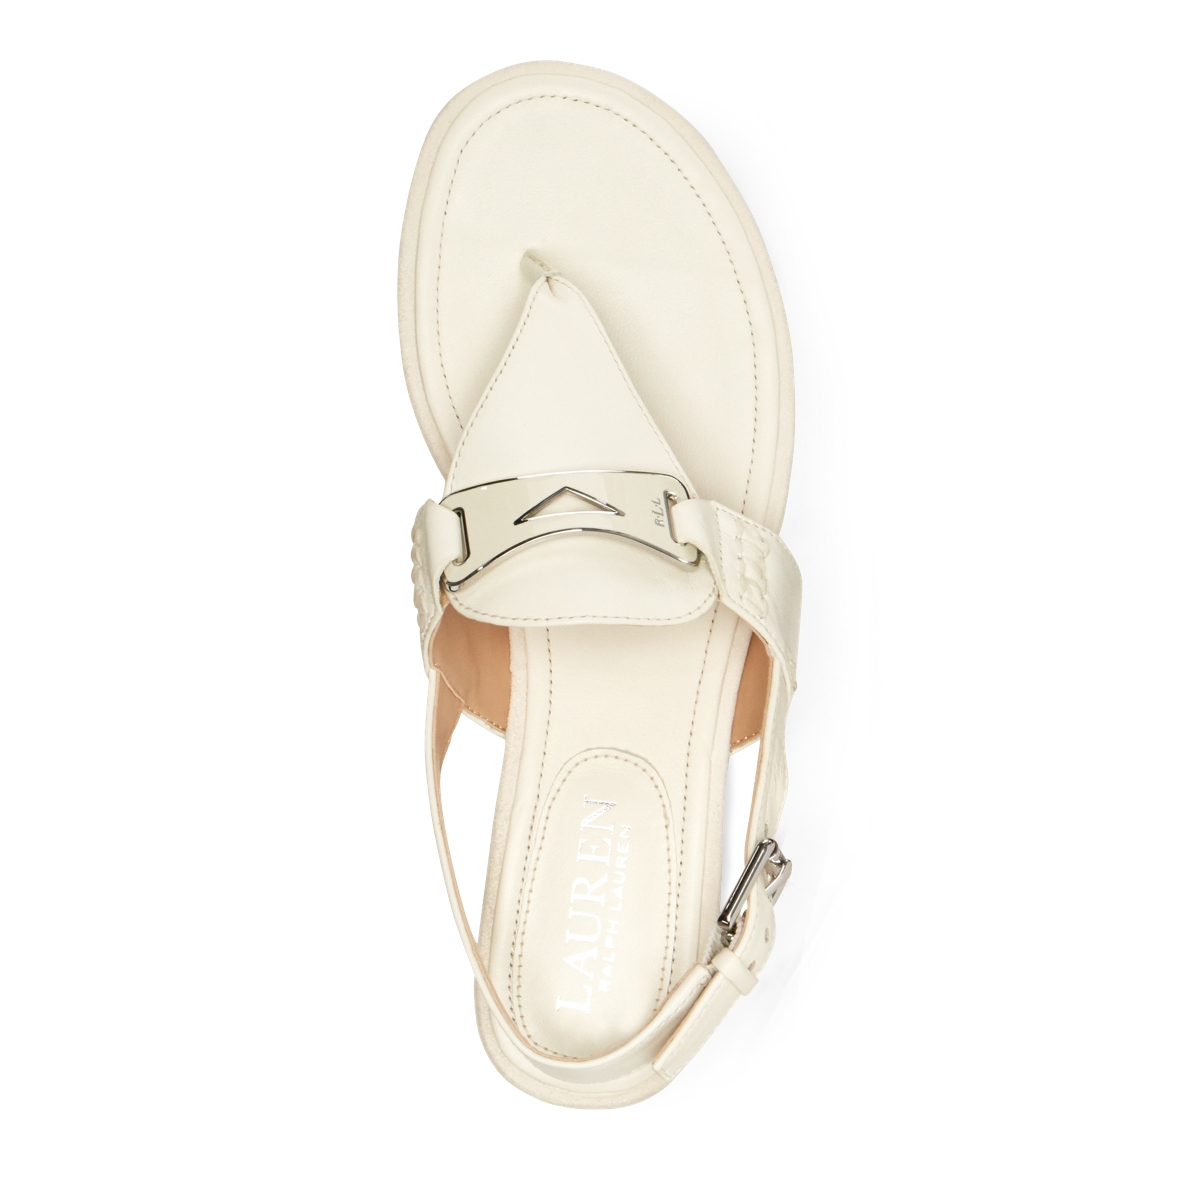 79a8b45cc328 Ralph Lauren Dayna Leather Thong Sandal at £42.5